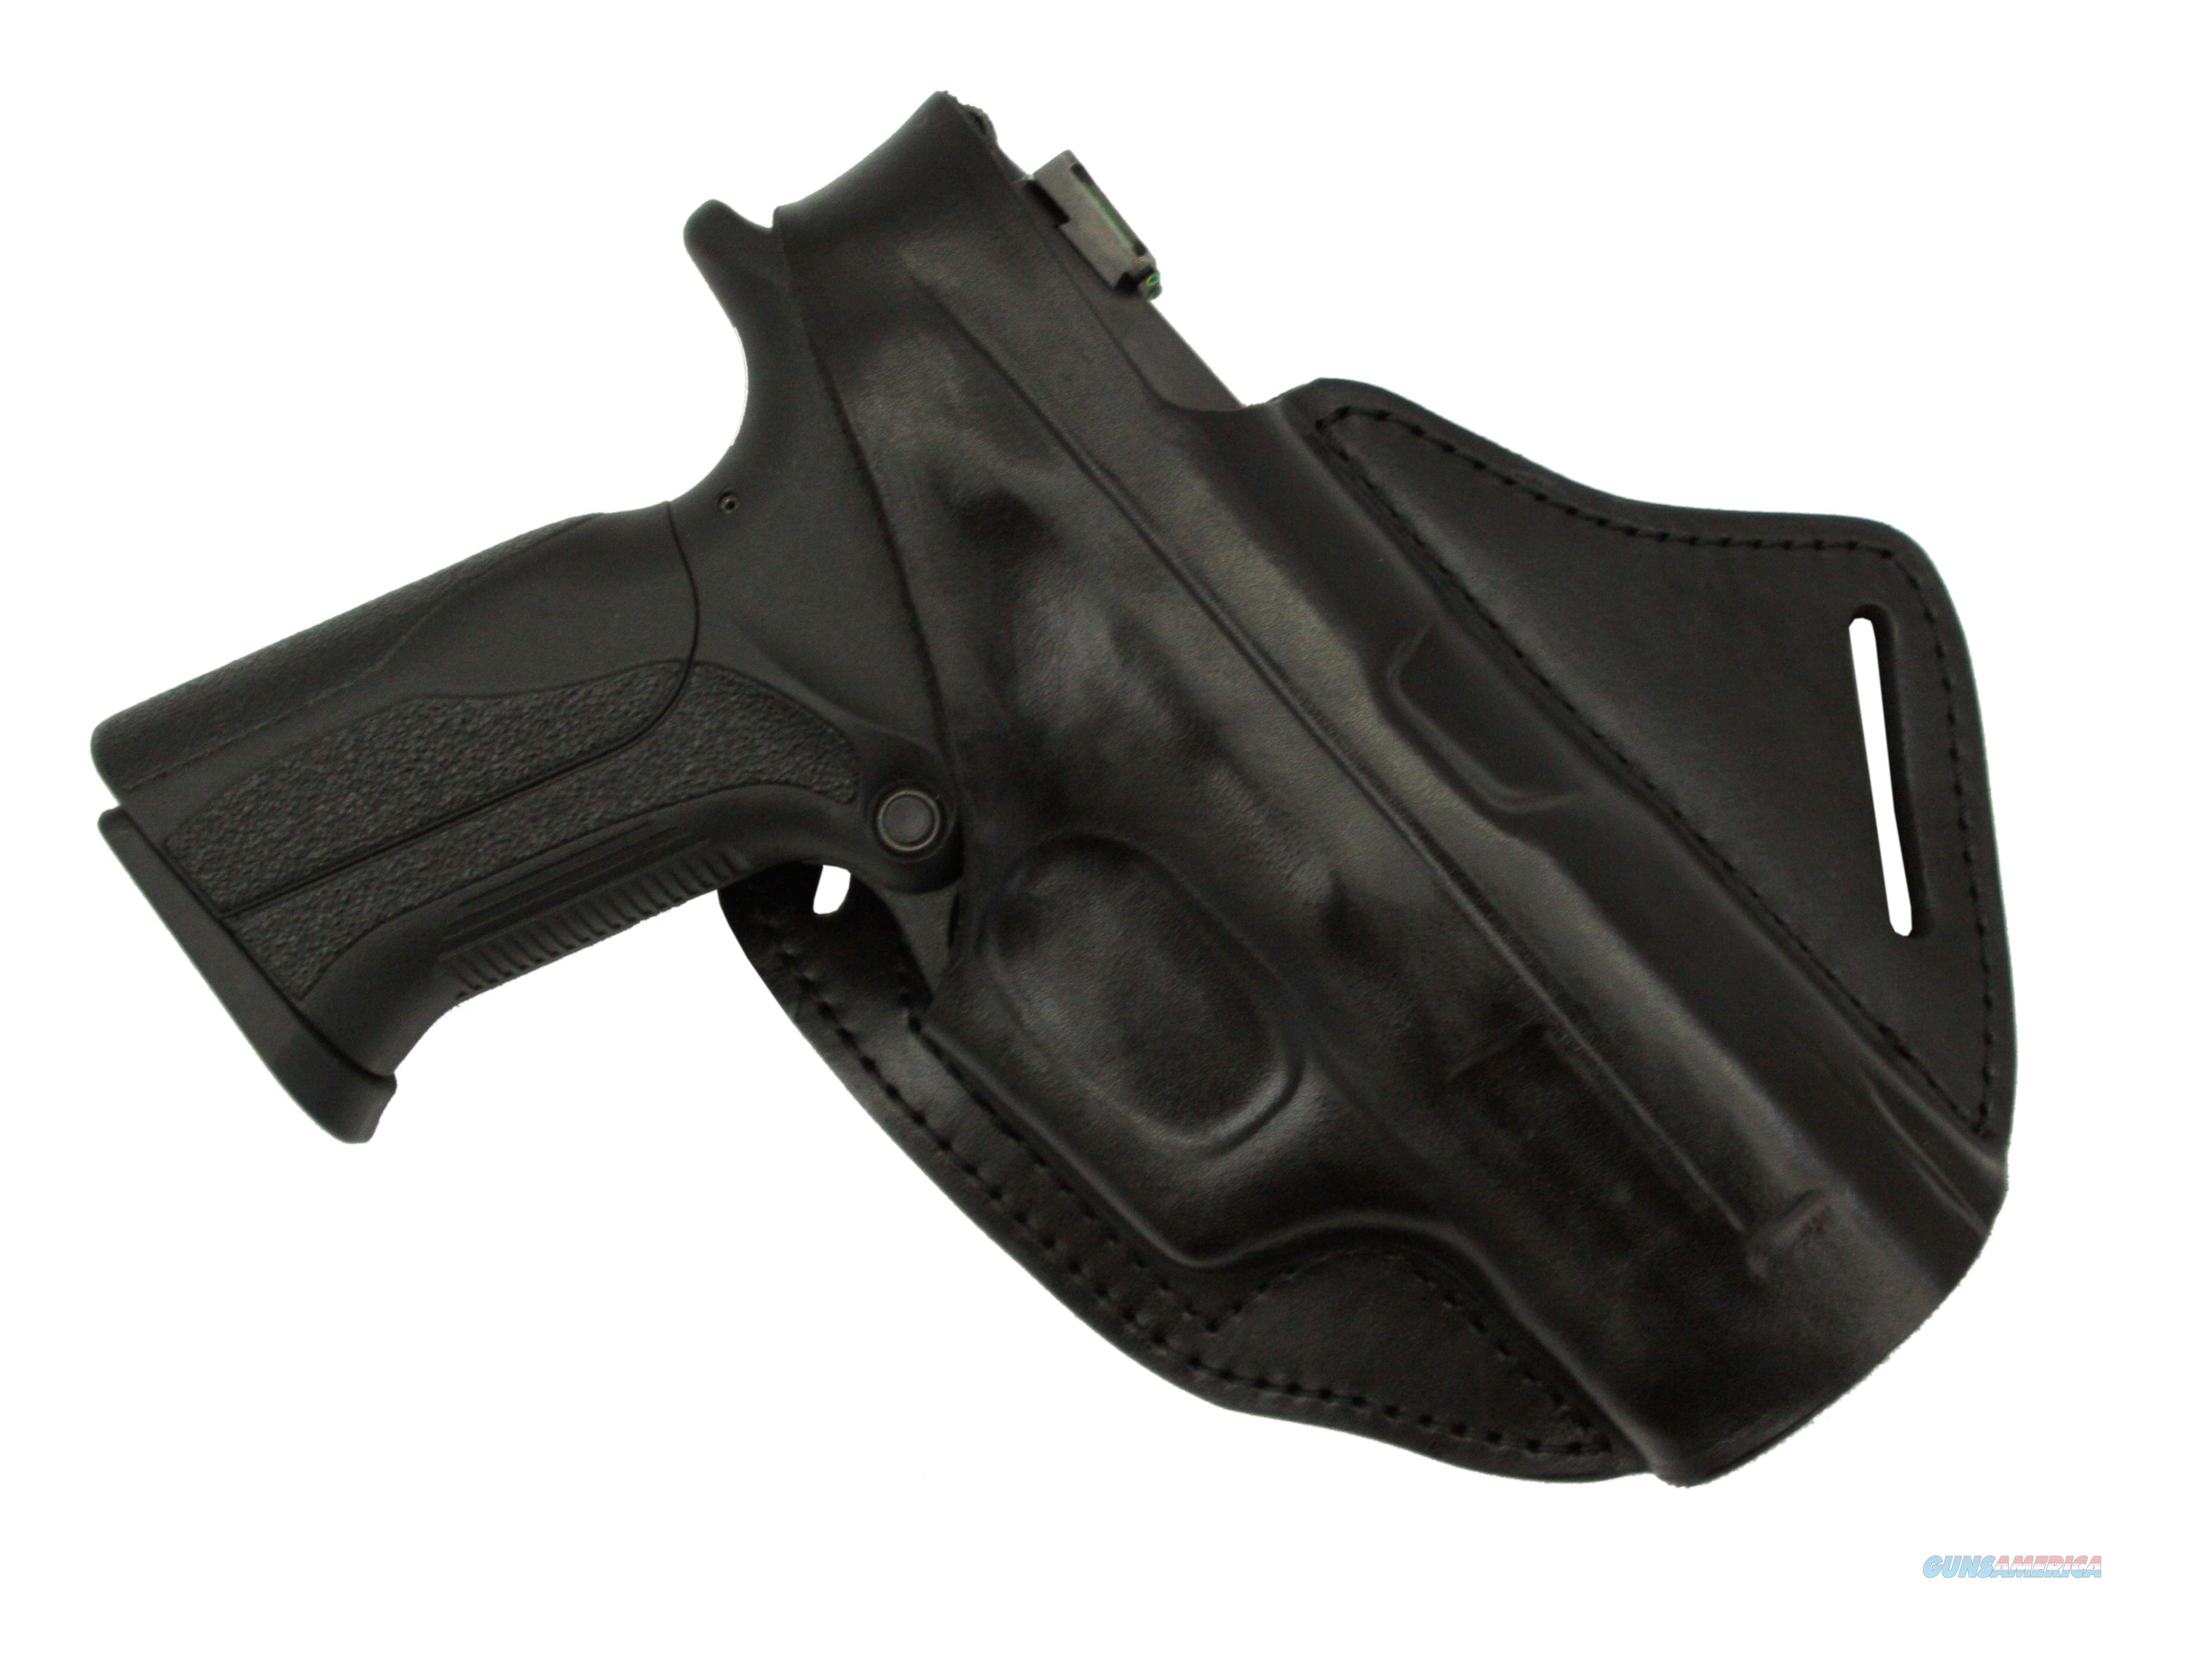 Cross Draw leather belt holster Sig Sauer SP2022  Non-Guns > Holsters and Gunleather > Concealed Carry